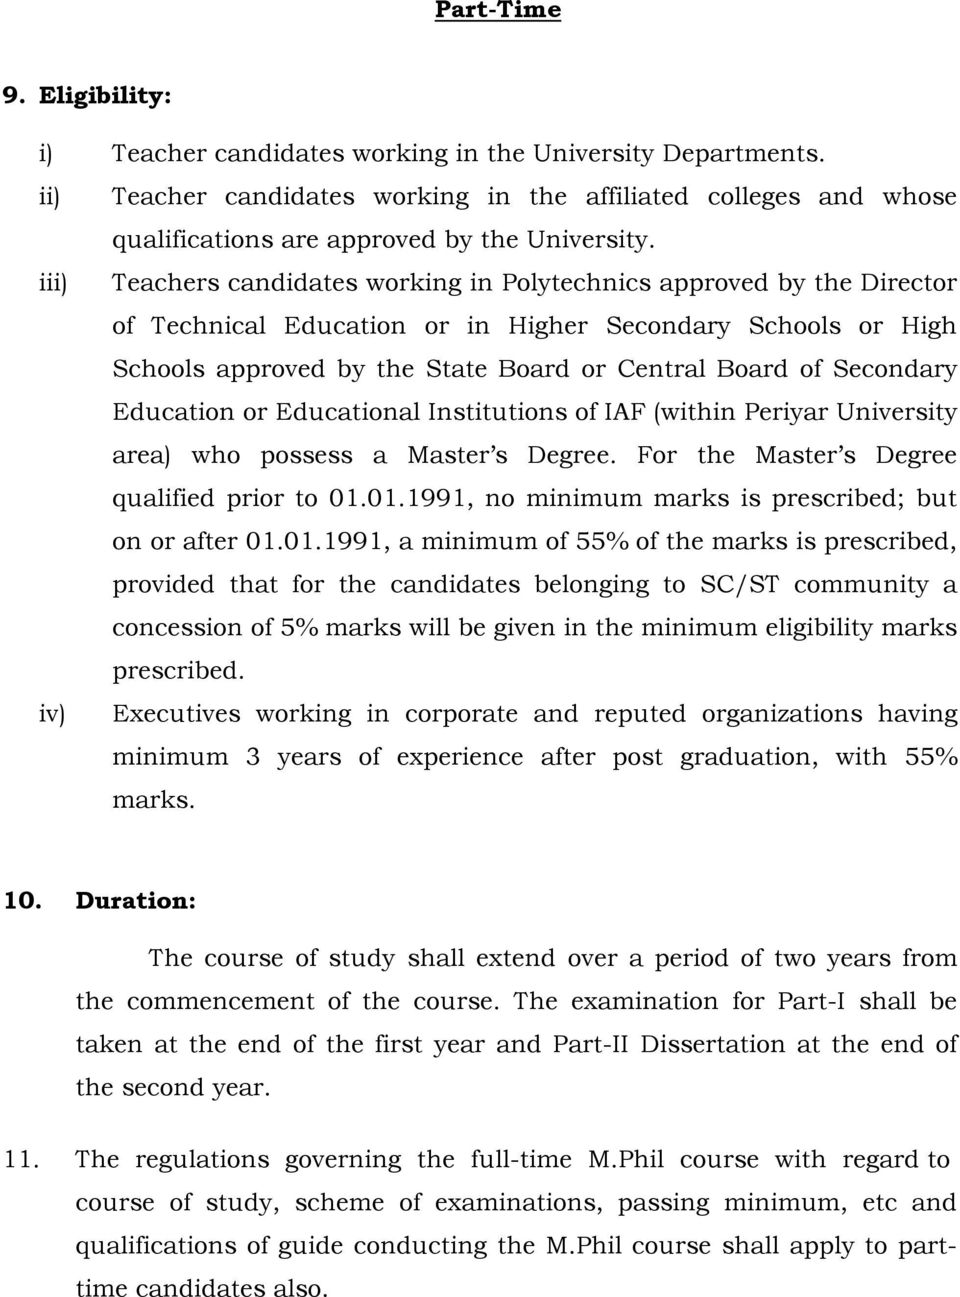 iii) Teachers candidates working in Polytechnics approved by the Director of Technical Education or in Higher Secondary Schools or High Schools approved by the State Board or Central Board of